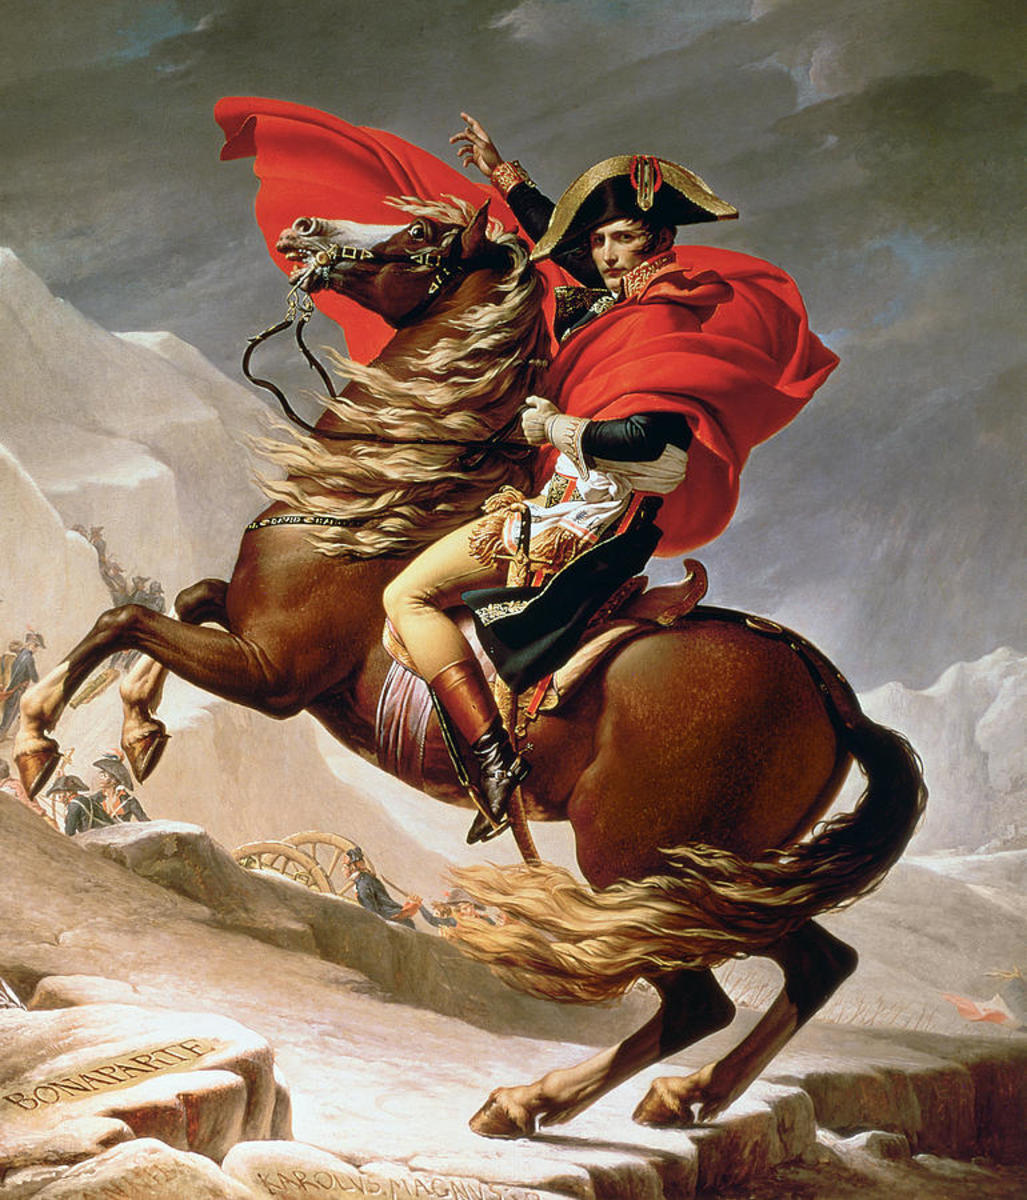 Napoleon fought, and led his troops onto and through the battlefields, while on horseback.  His decision-making ability has been historically considered nothing less than phenomenal throughout the French Revolutionary Wars.